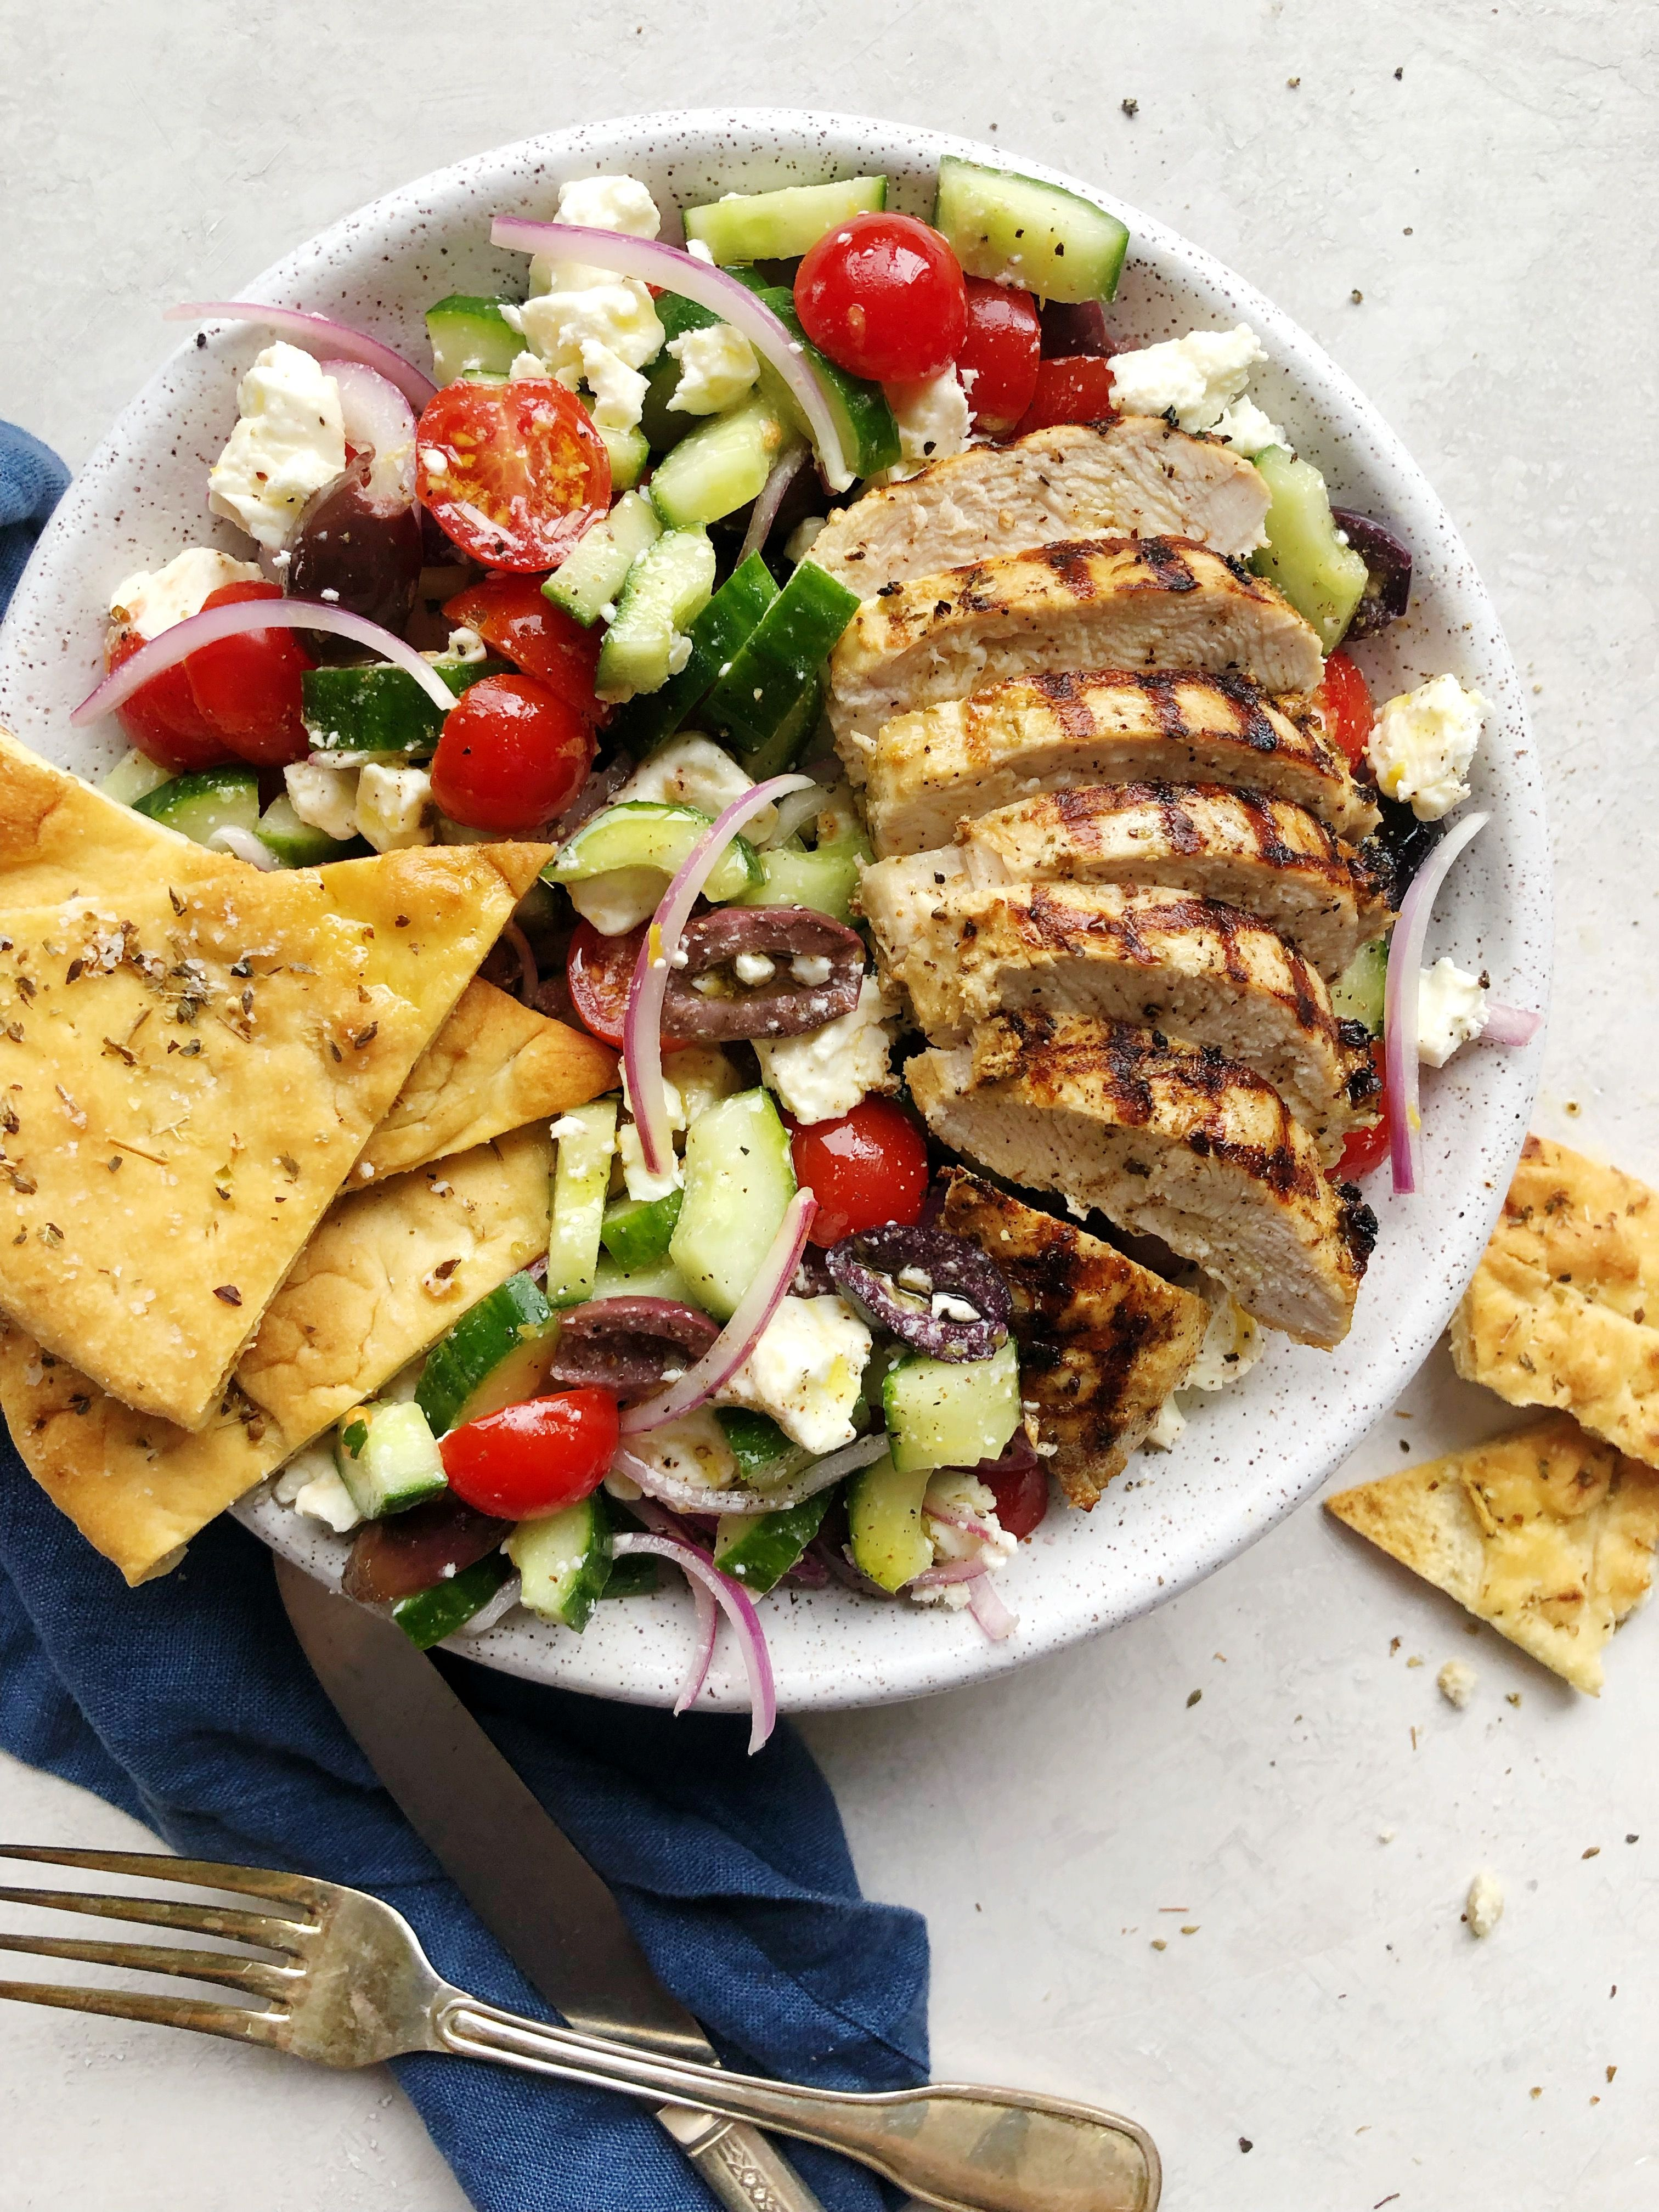 Greek Salad with Grilled Chicken and Baked Pita Wedges